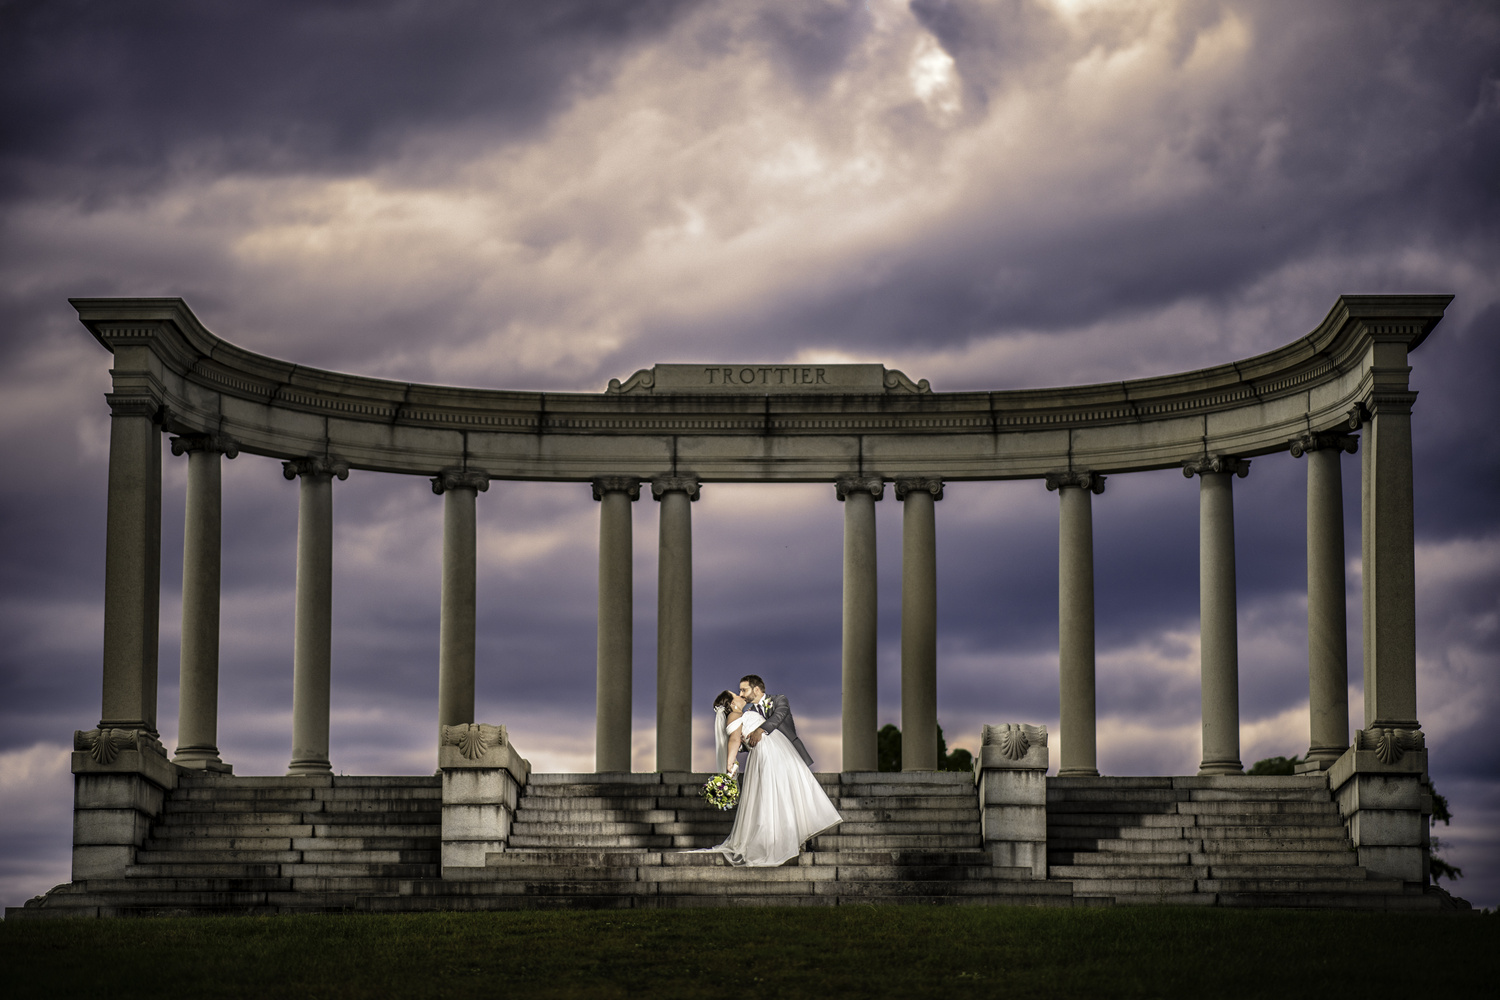 Dramatic Monument by Steven Houle